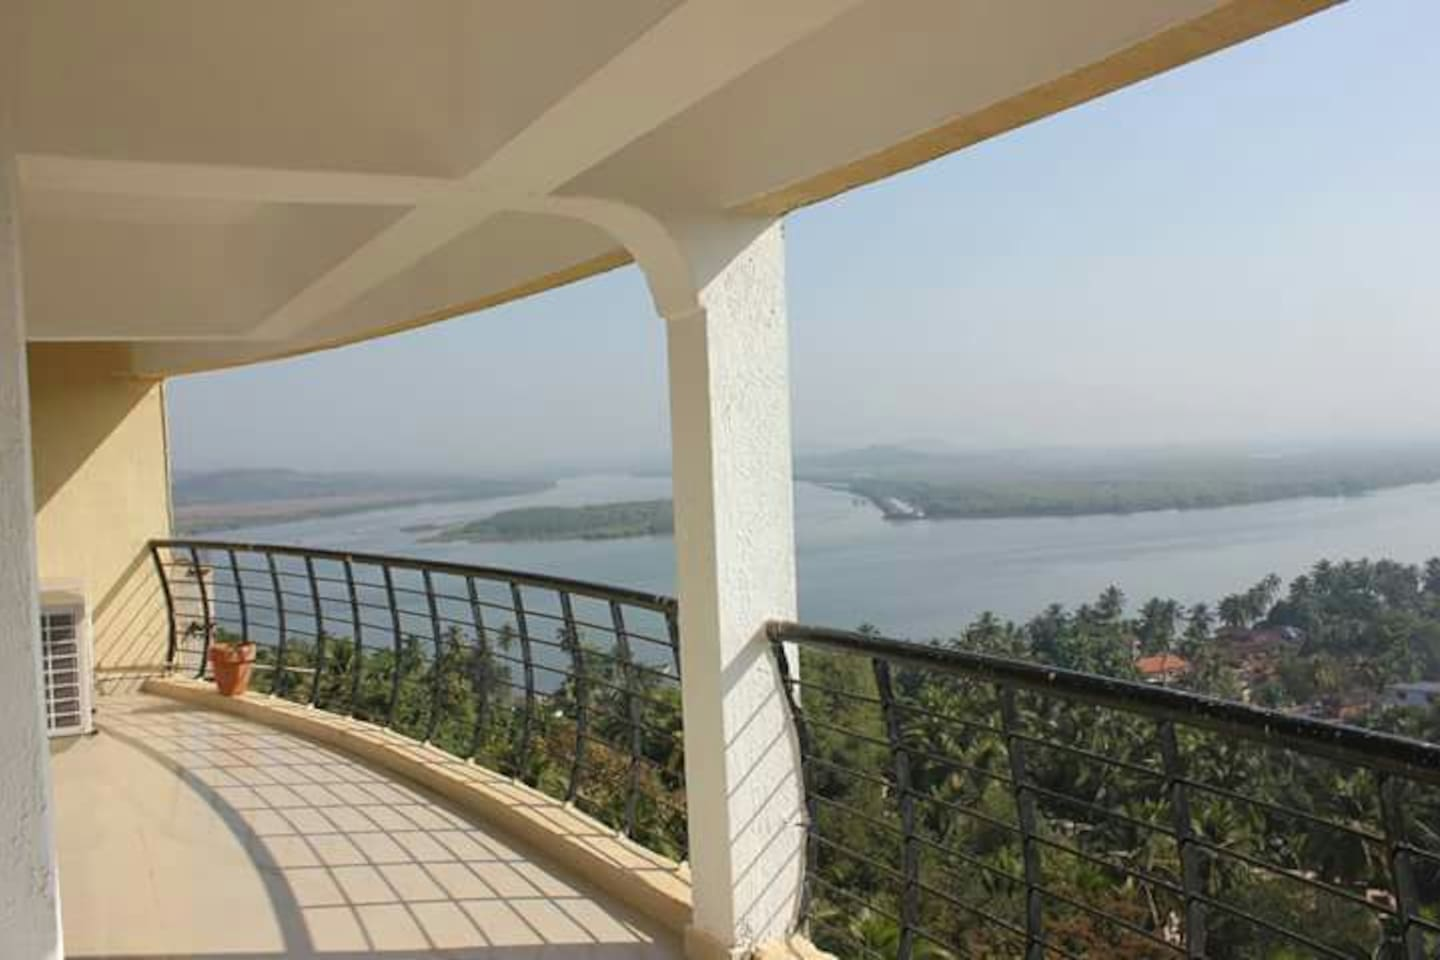 Wide balcony with Unobstructed view of Mandovi review and Divar Island.